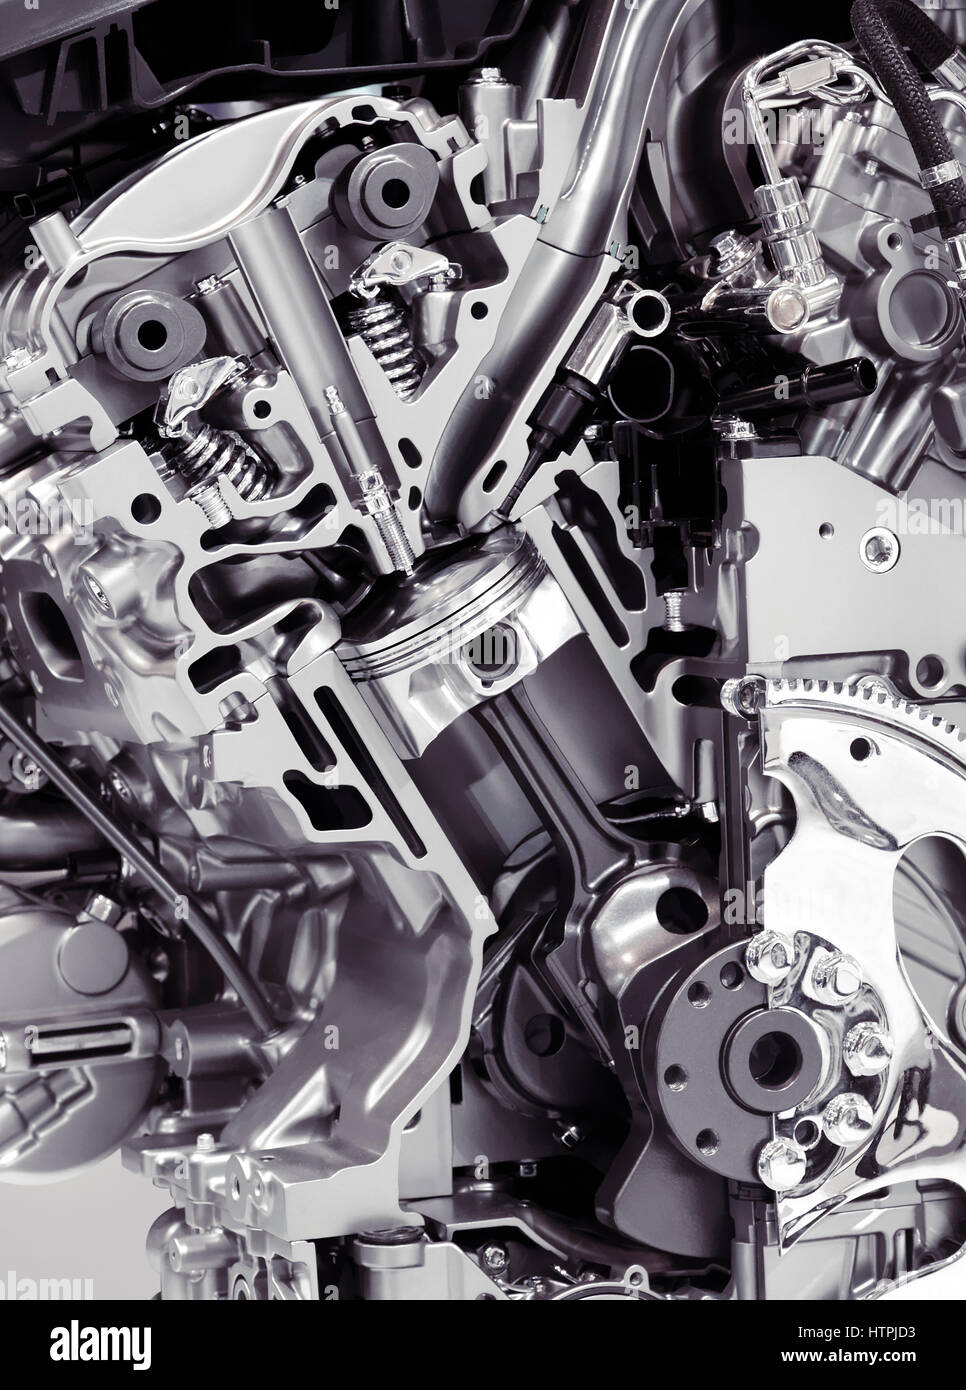 Closeup cross section of 2017 Buick Lacrosse 3.6L V6 VVT DI 310HP car engine showing the cylinder, piston and valves - Stock Image